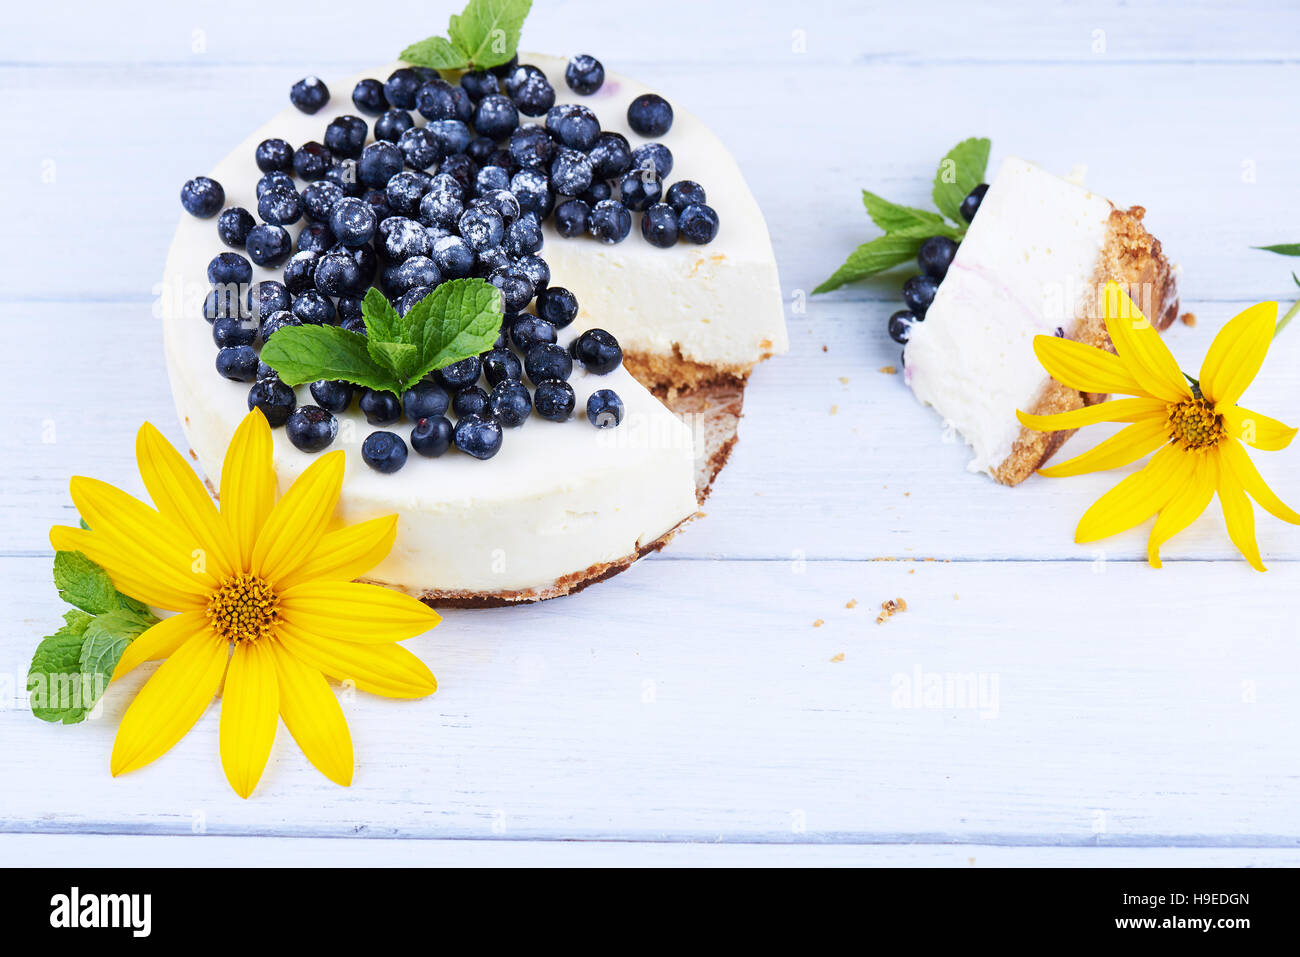 Sweet creamy blueberry cheesecake with fresh blueberries, mint leaves, and yellow flower with a cut piece on a white - Stock Image